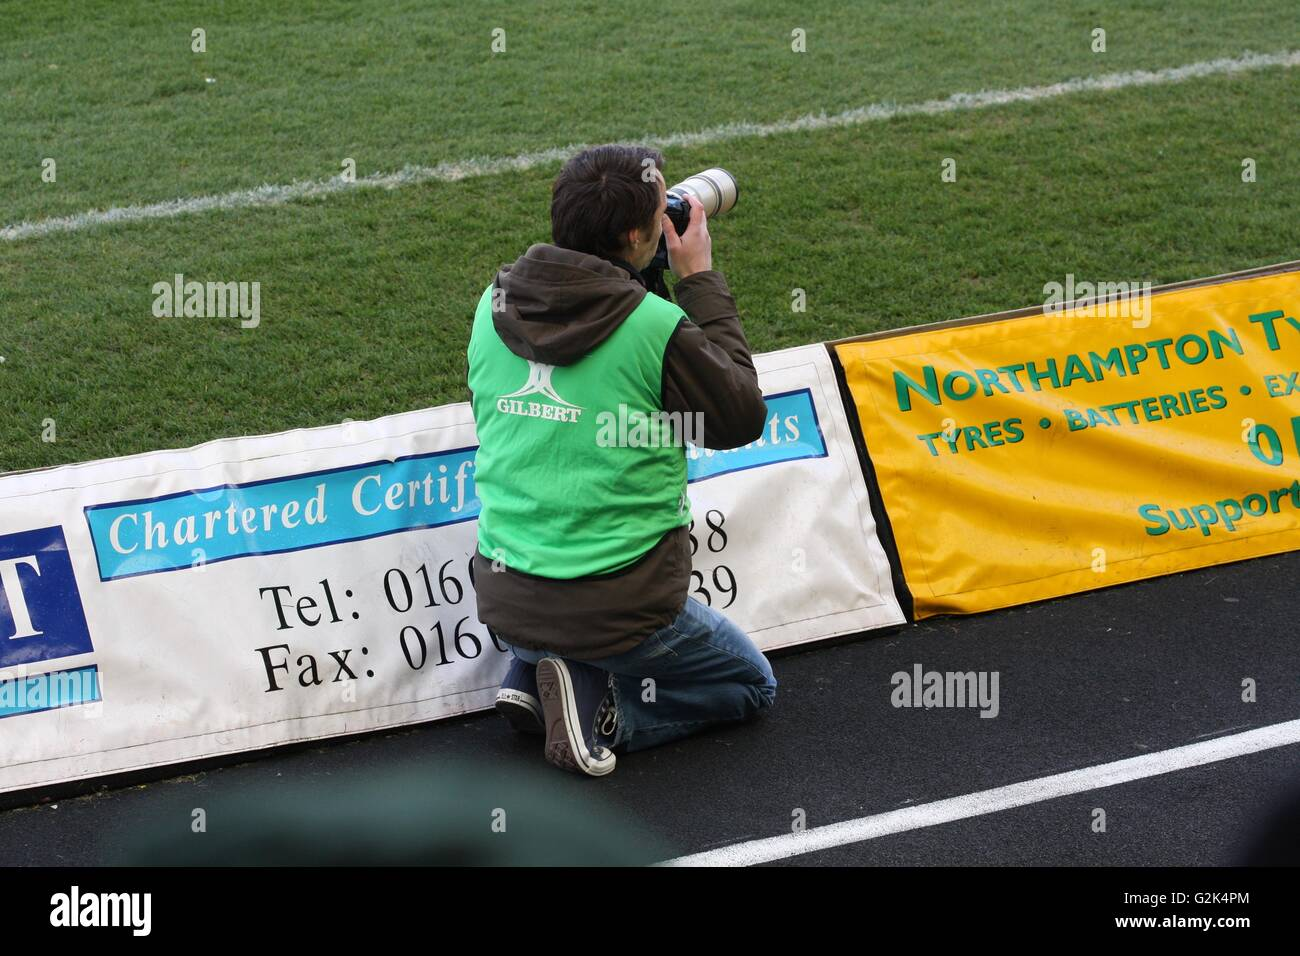 Photographer at a sports event - Stock Image